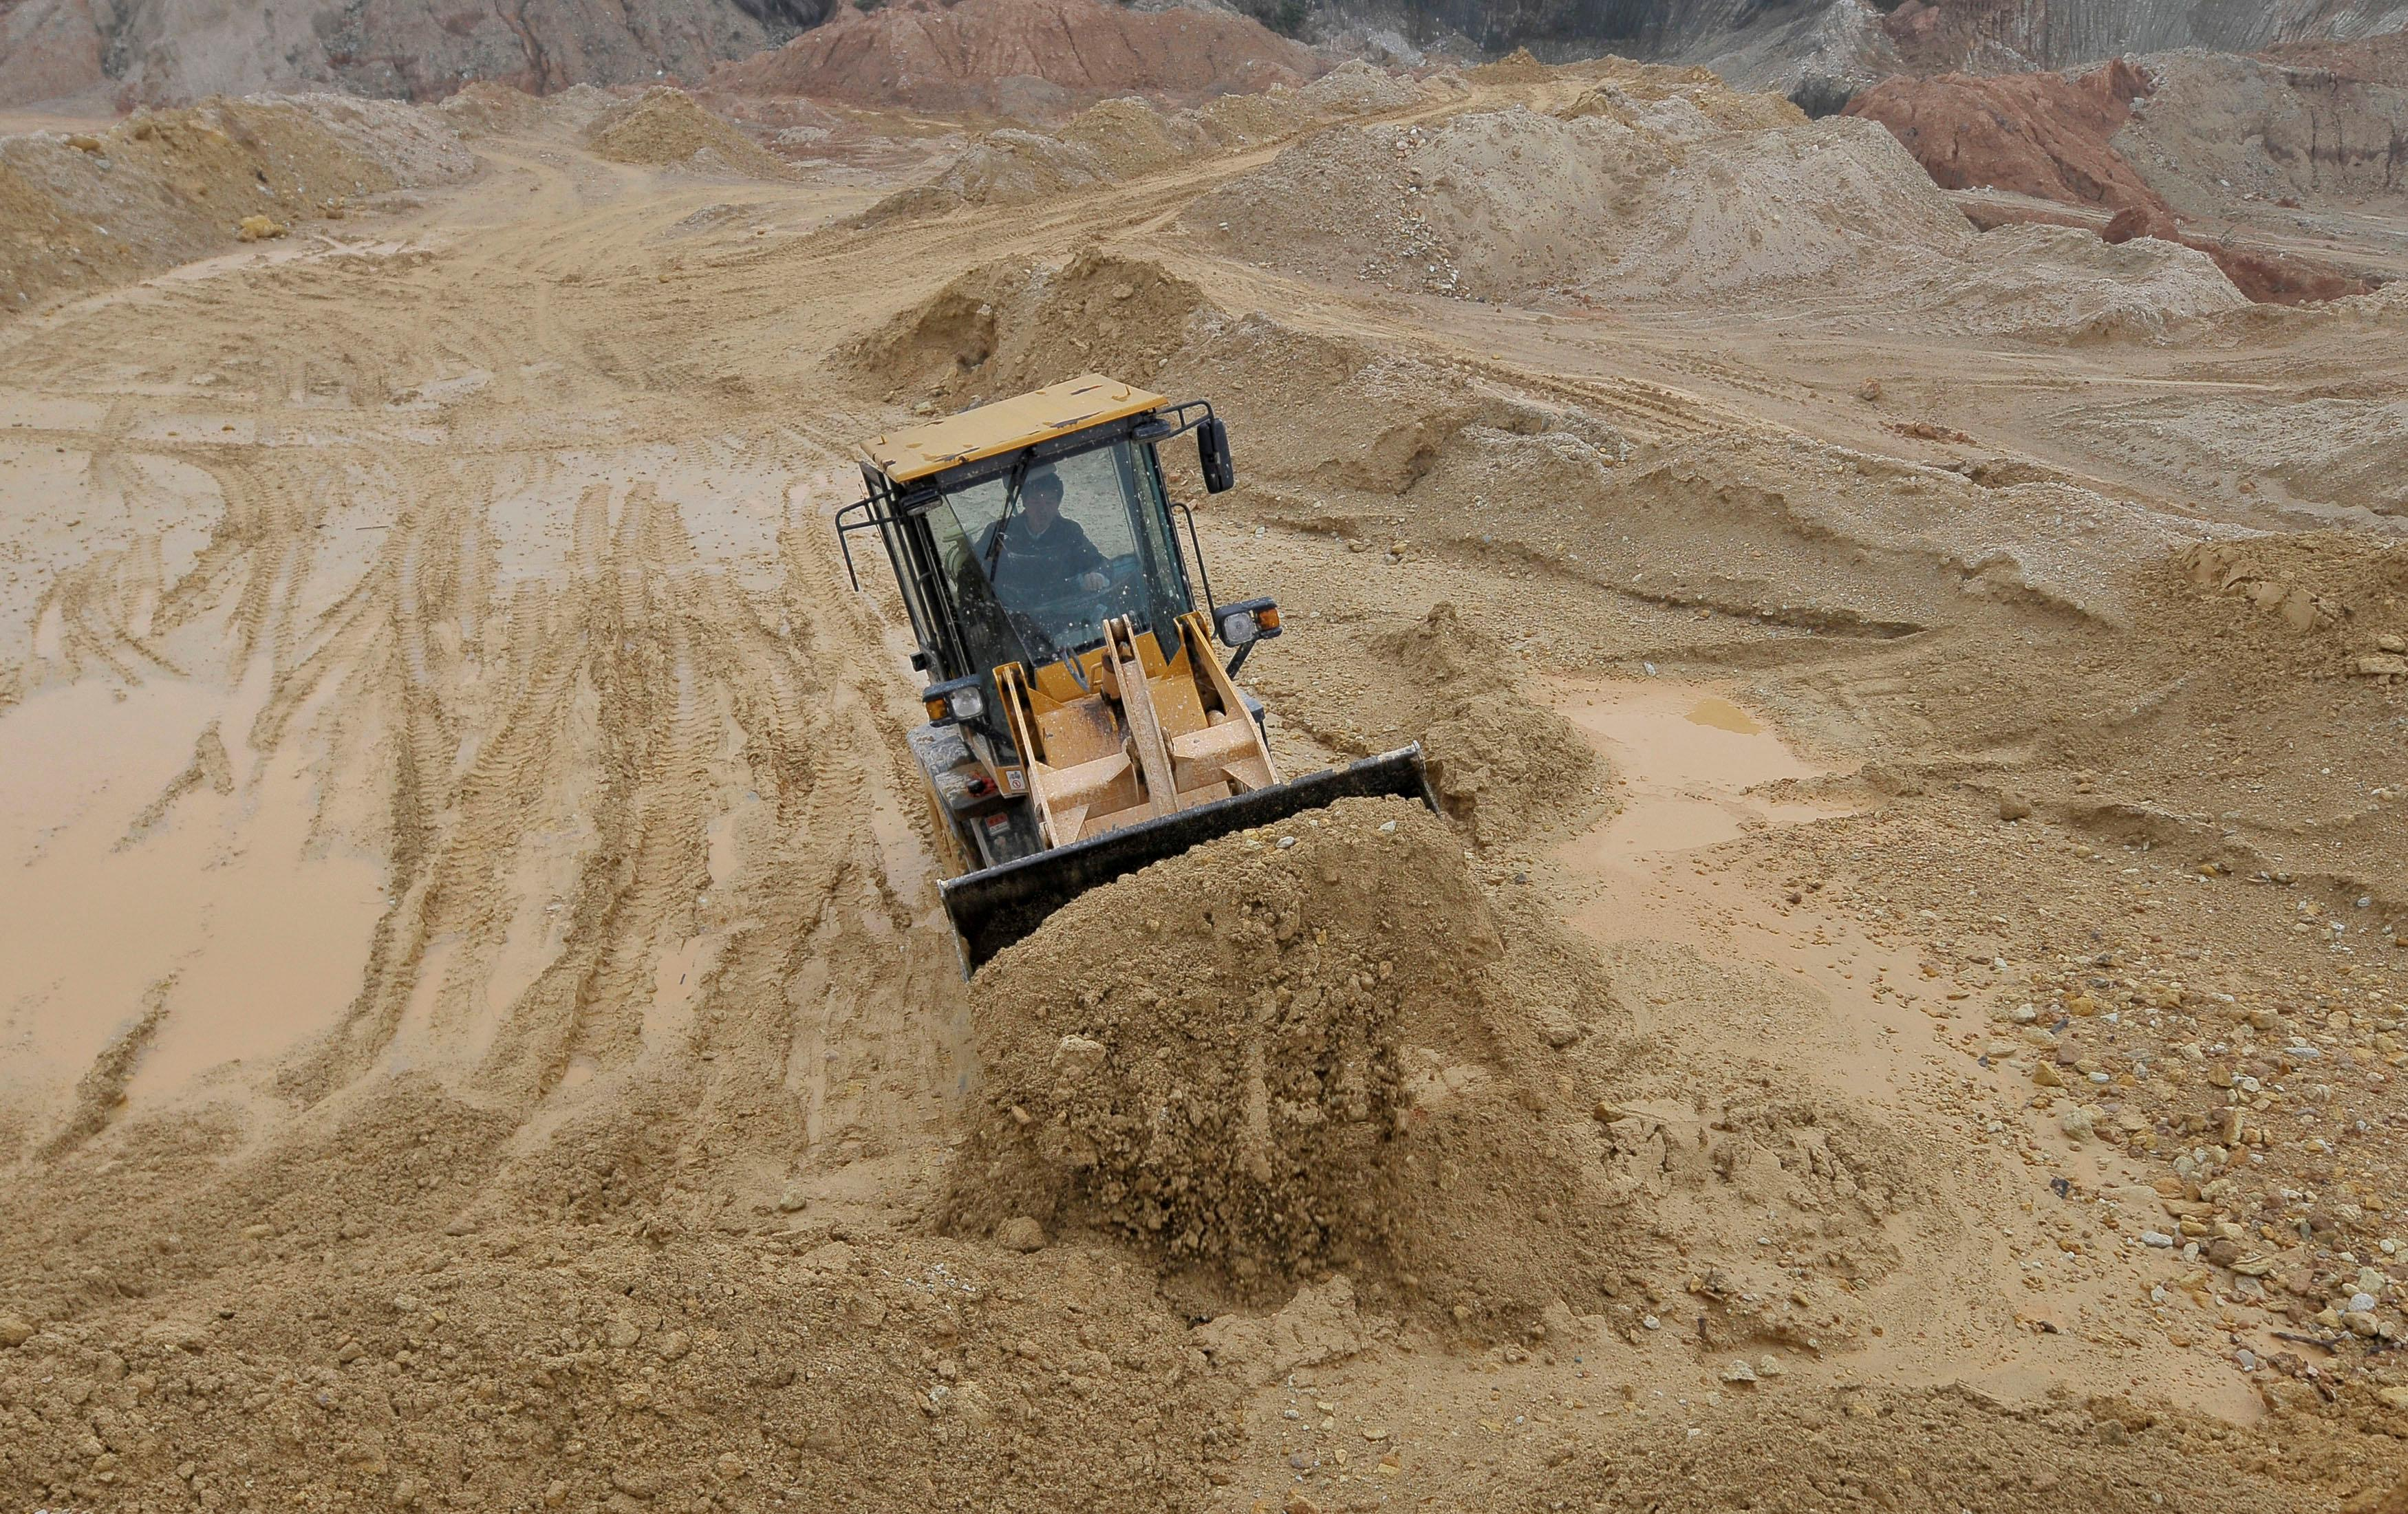 A labourer operates a bulldozer at a site of a rare earth metals mine at Nancheng county, Jiangxi province,China March 14, 2012. Stringer